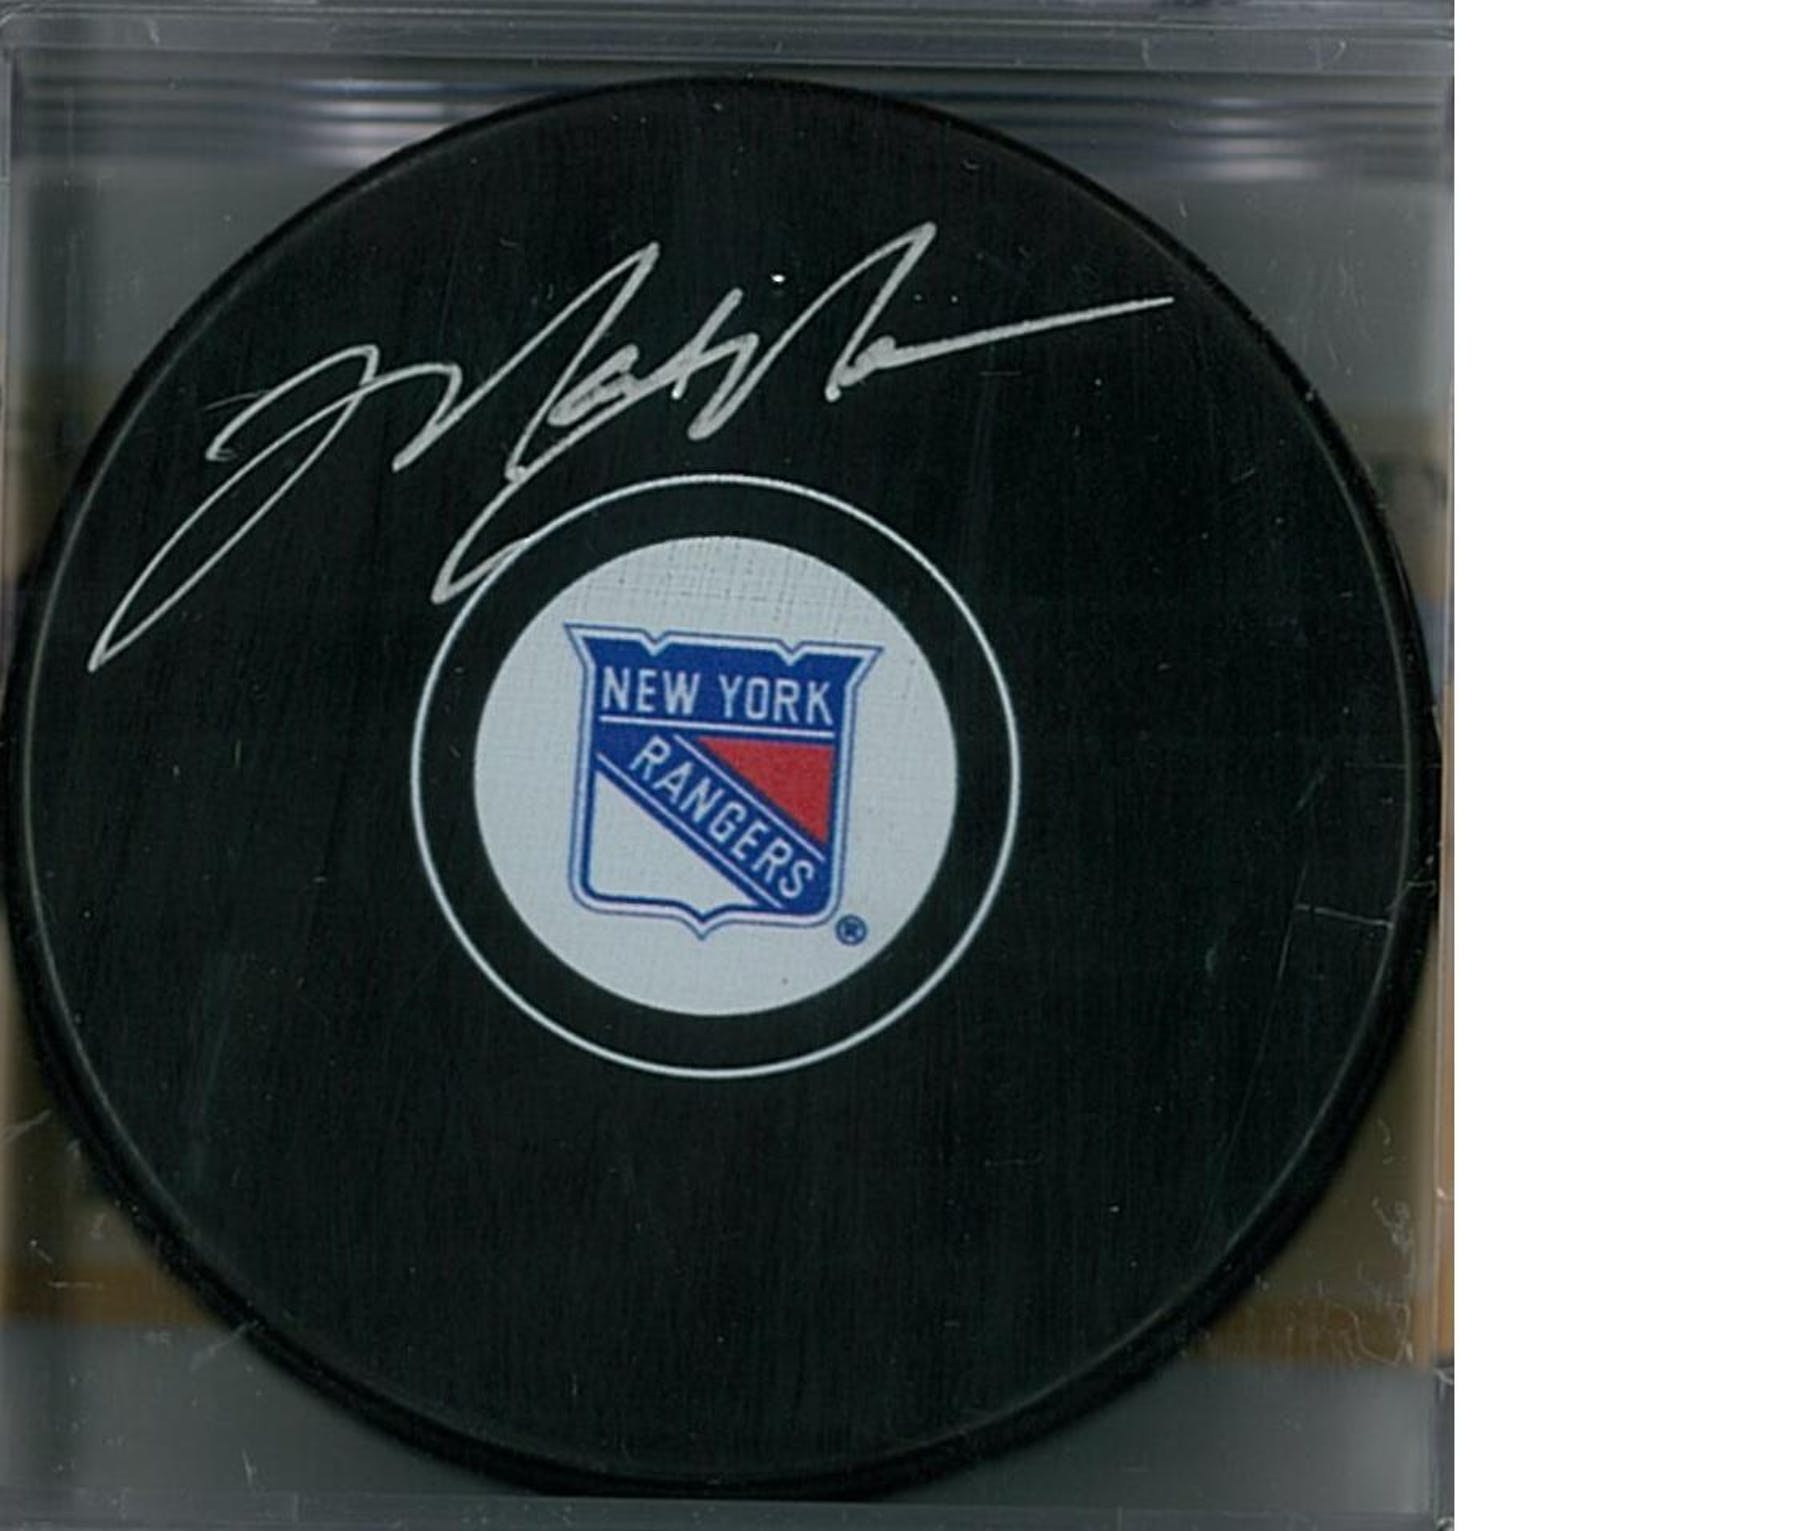 online store 3cafb 6fcba Mark Messier Autographed New York Rangers Hockey Puck (Steiner COA)